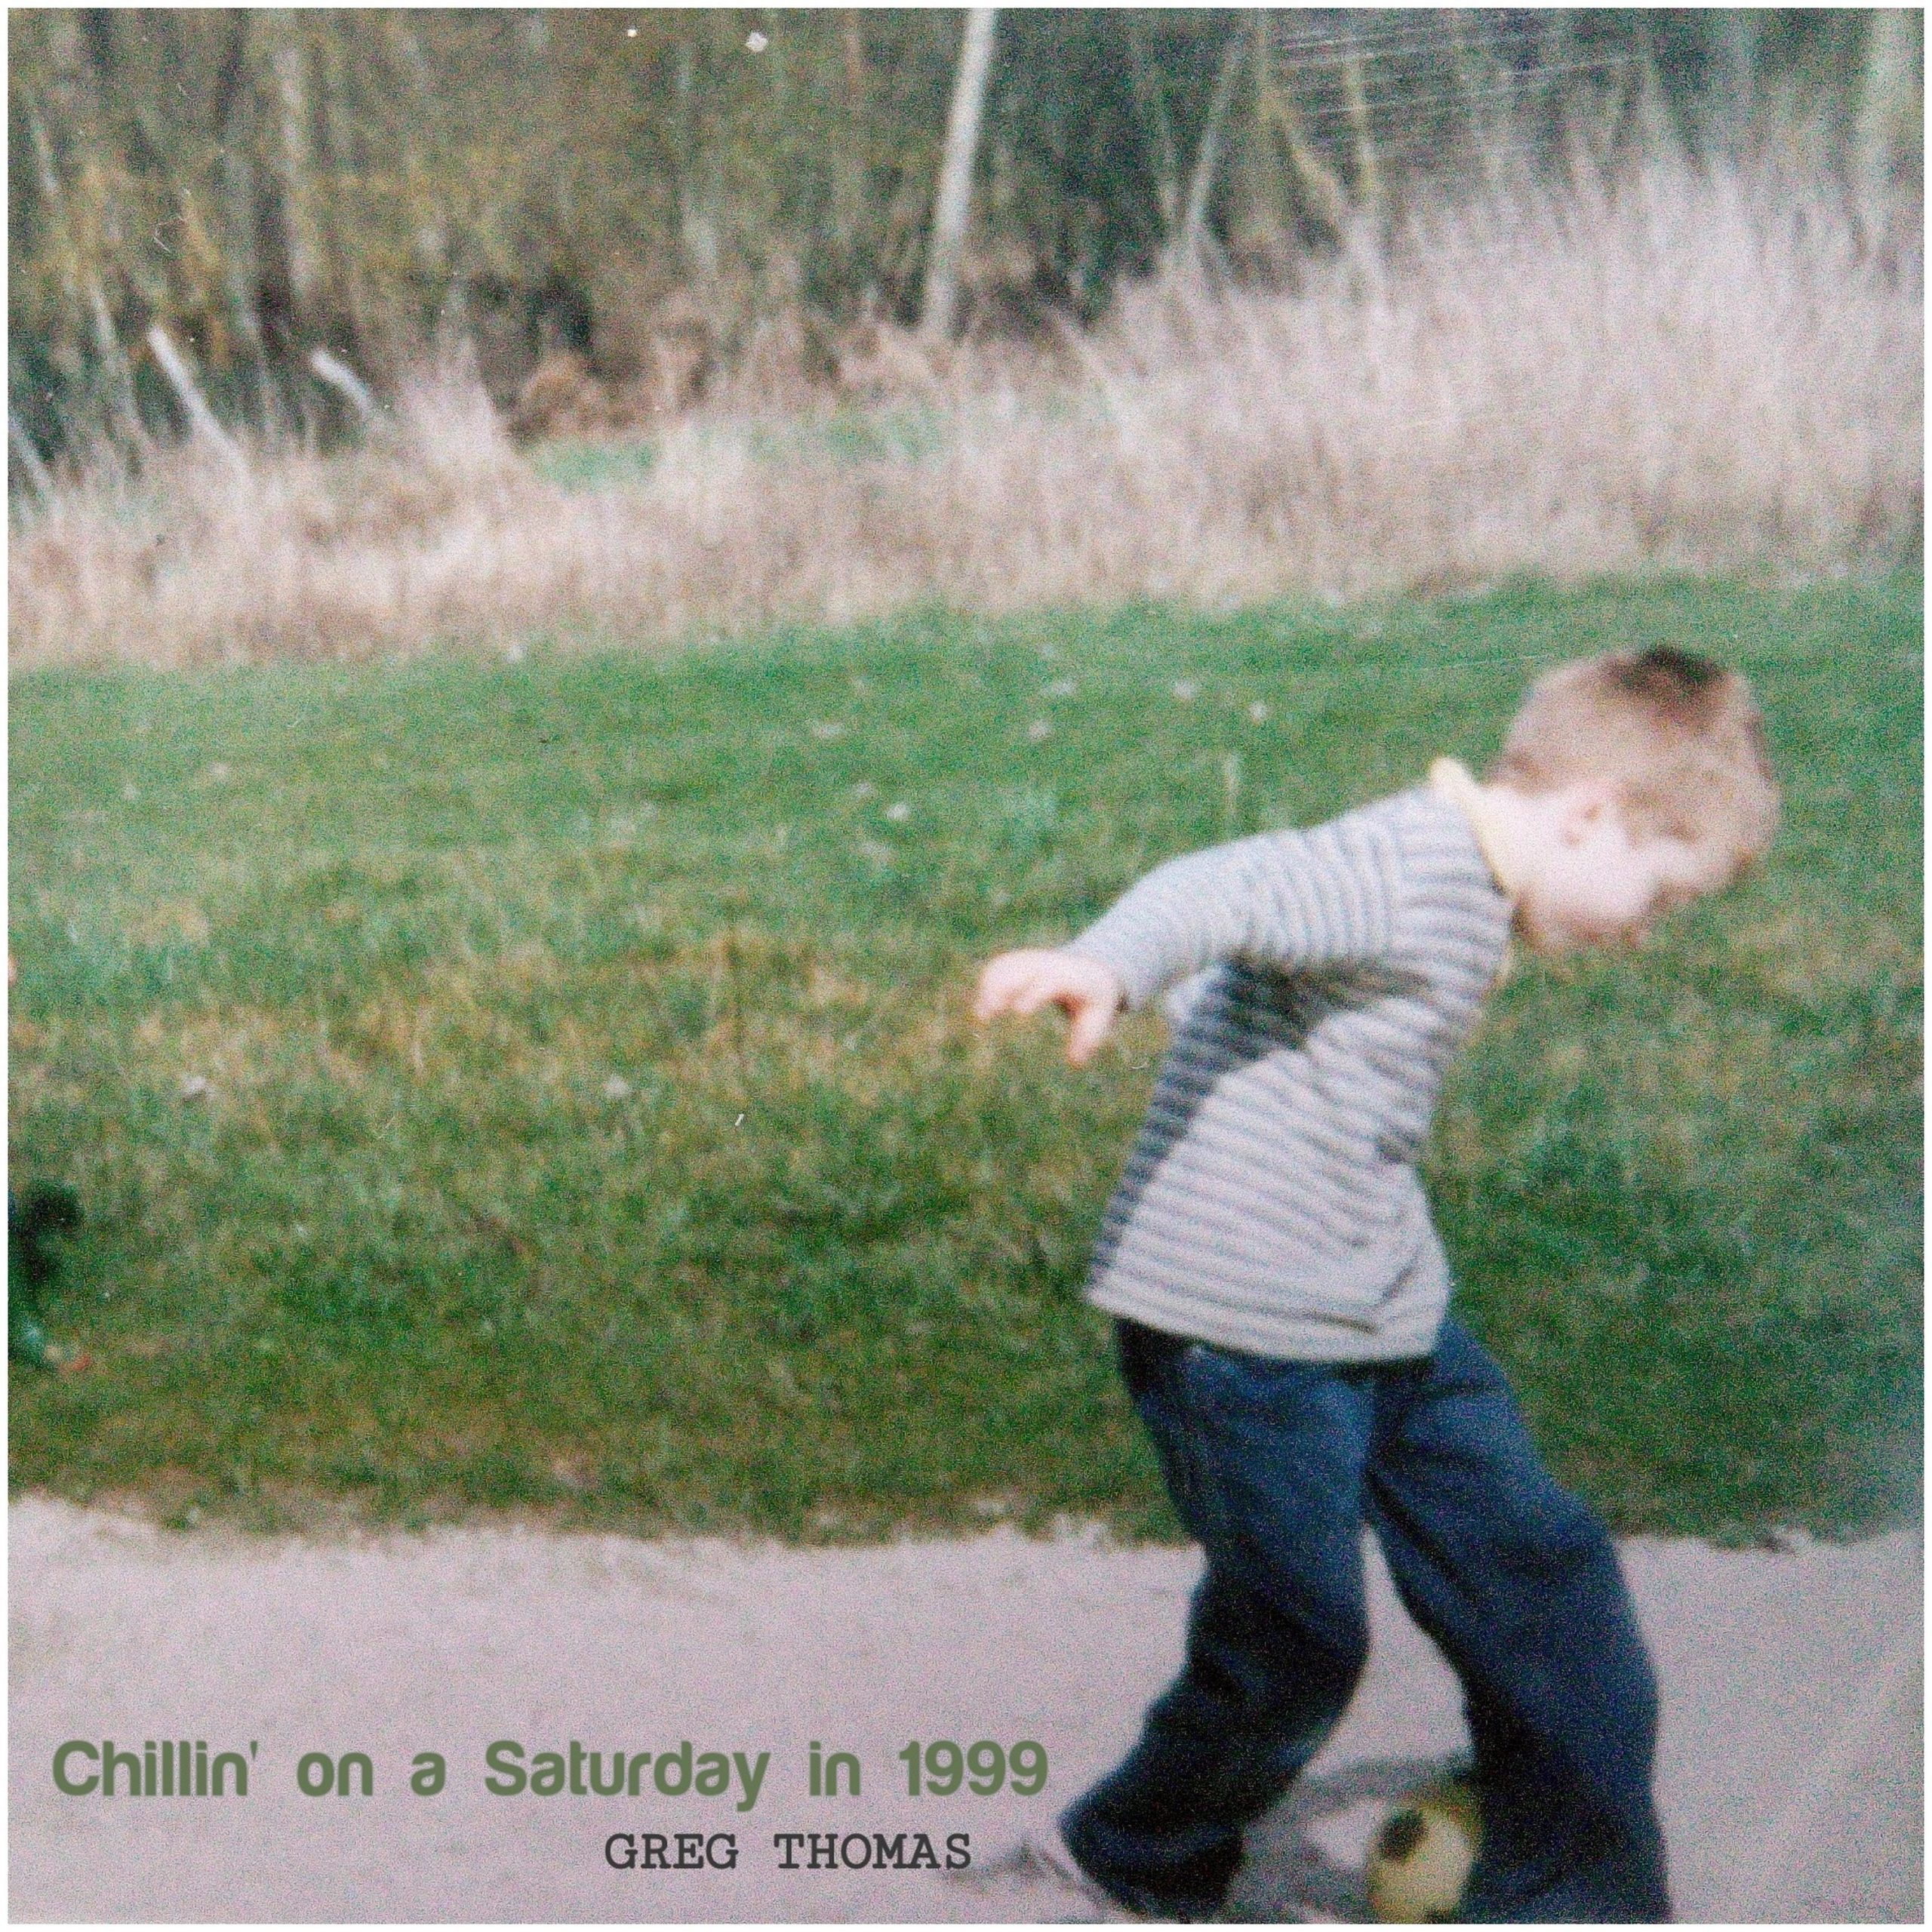 Greg Thomas – Chillin' on a Saturday in 1999